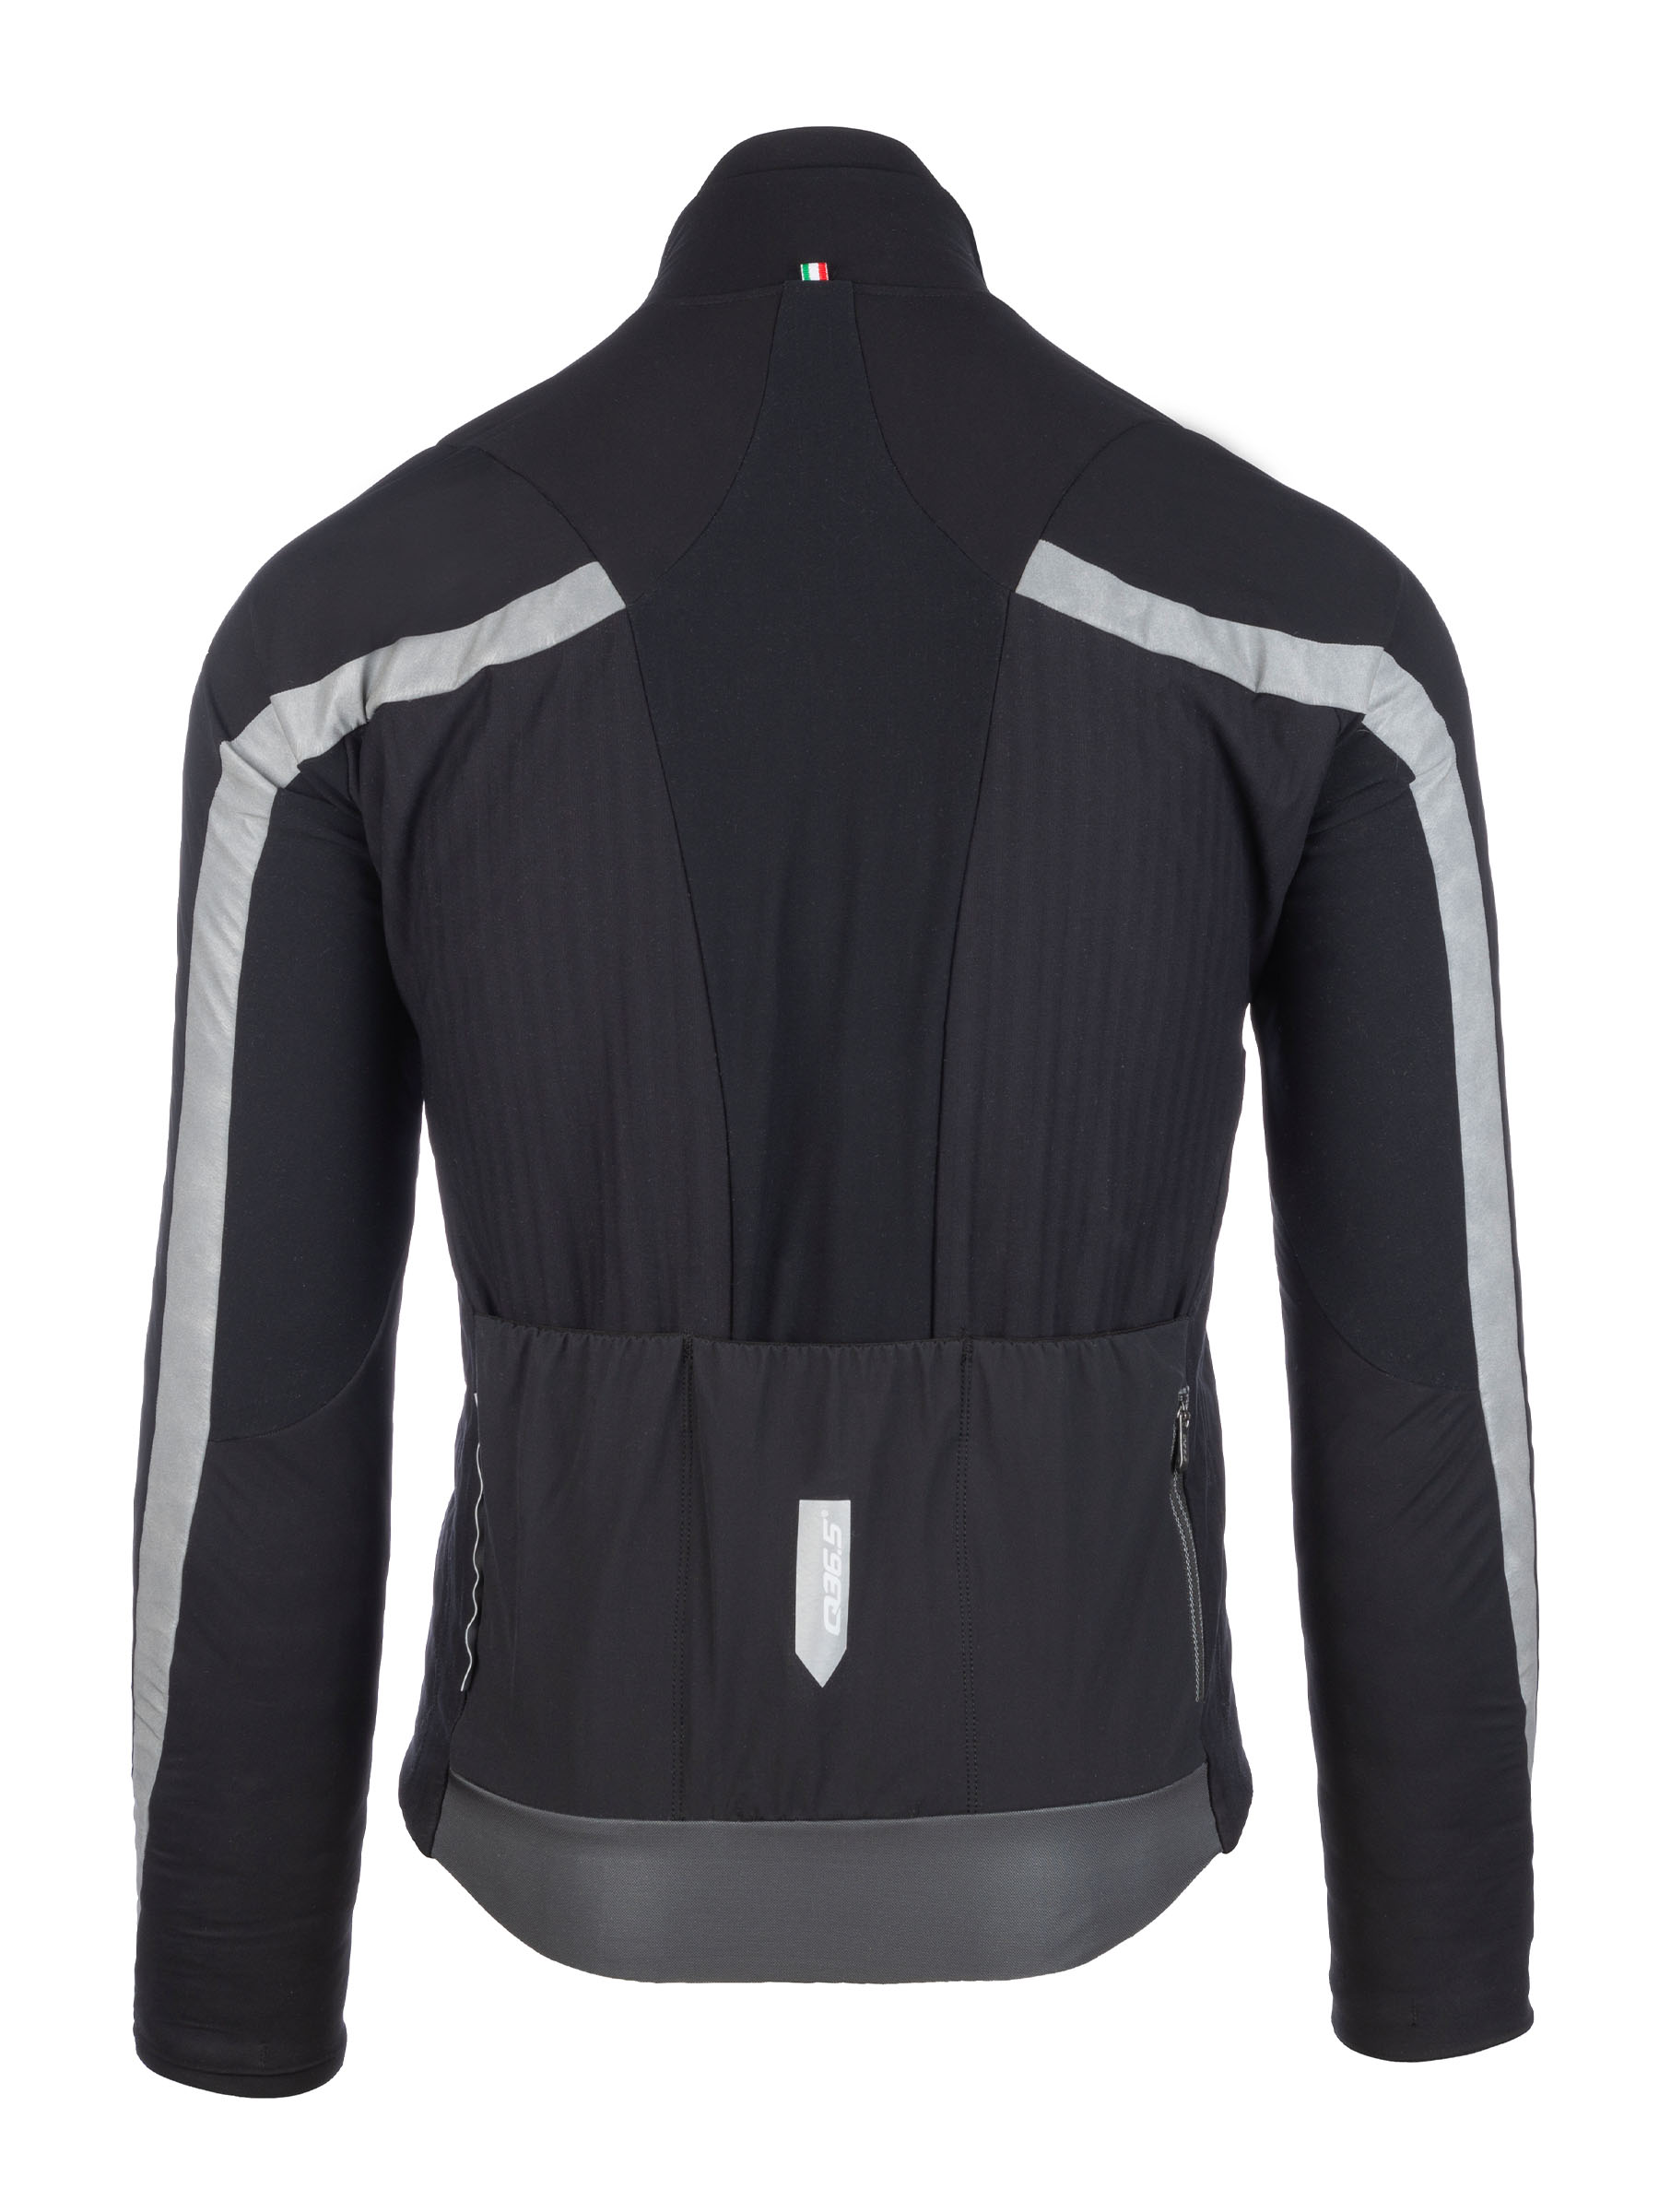 Mens cycling thermal jacket Interval Termica - 051.2 - black - back